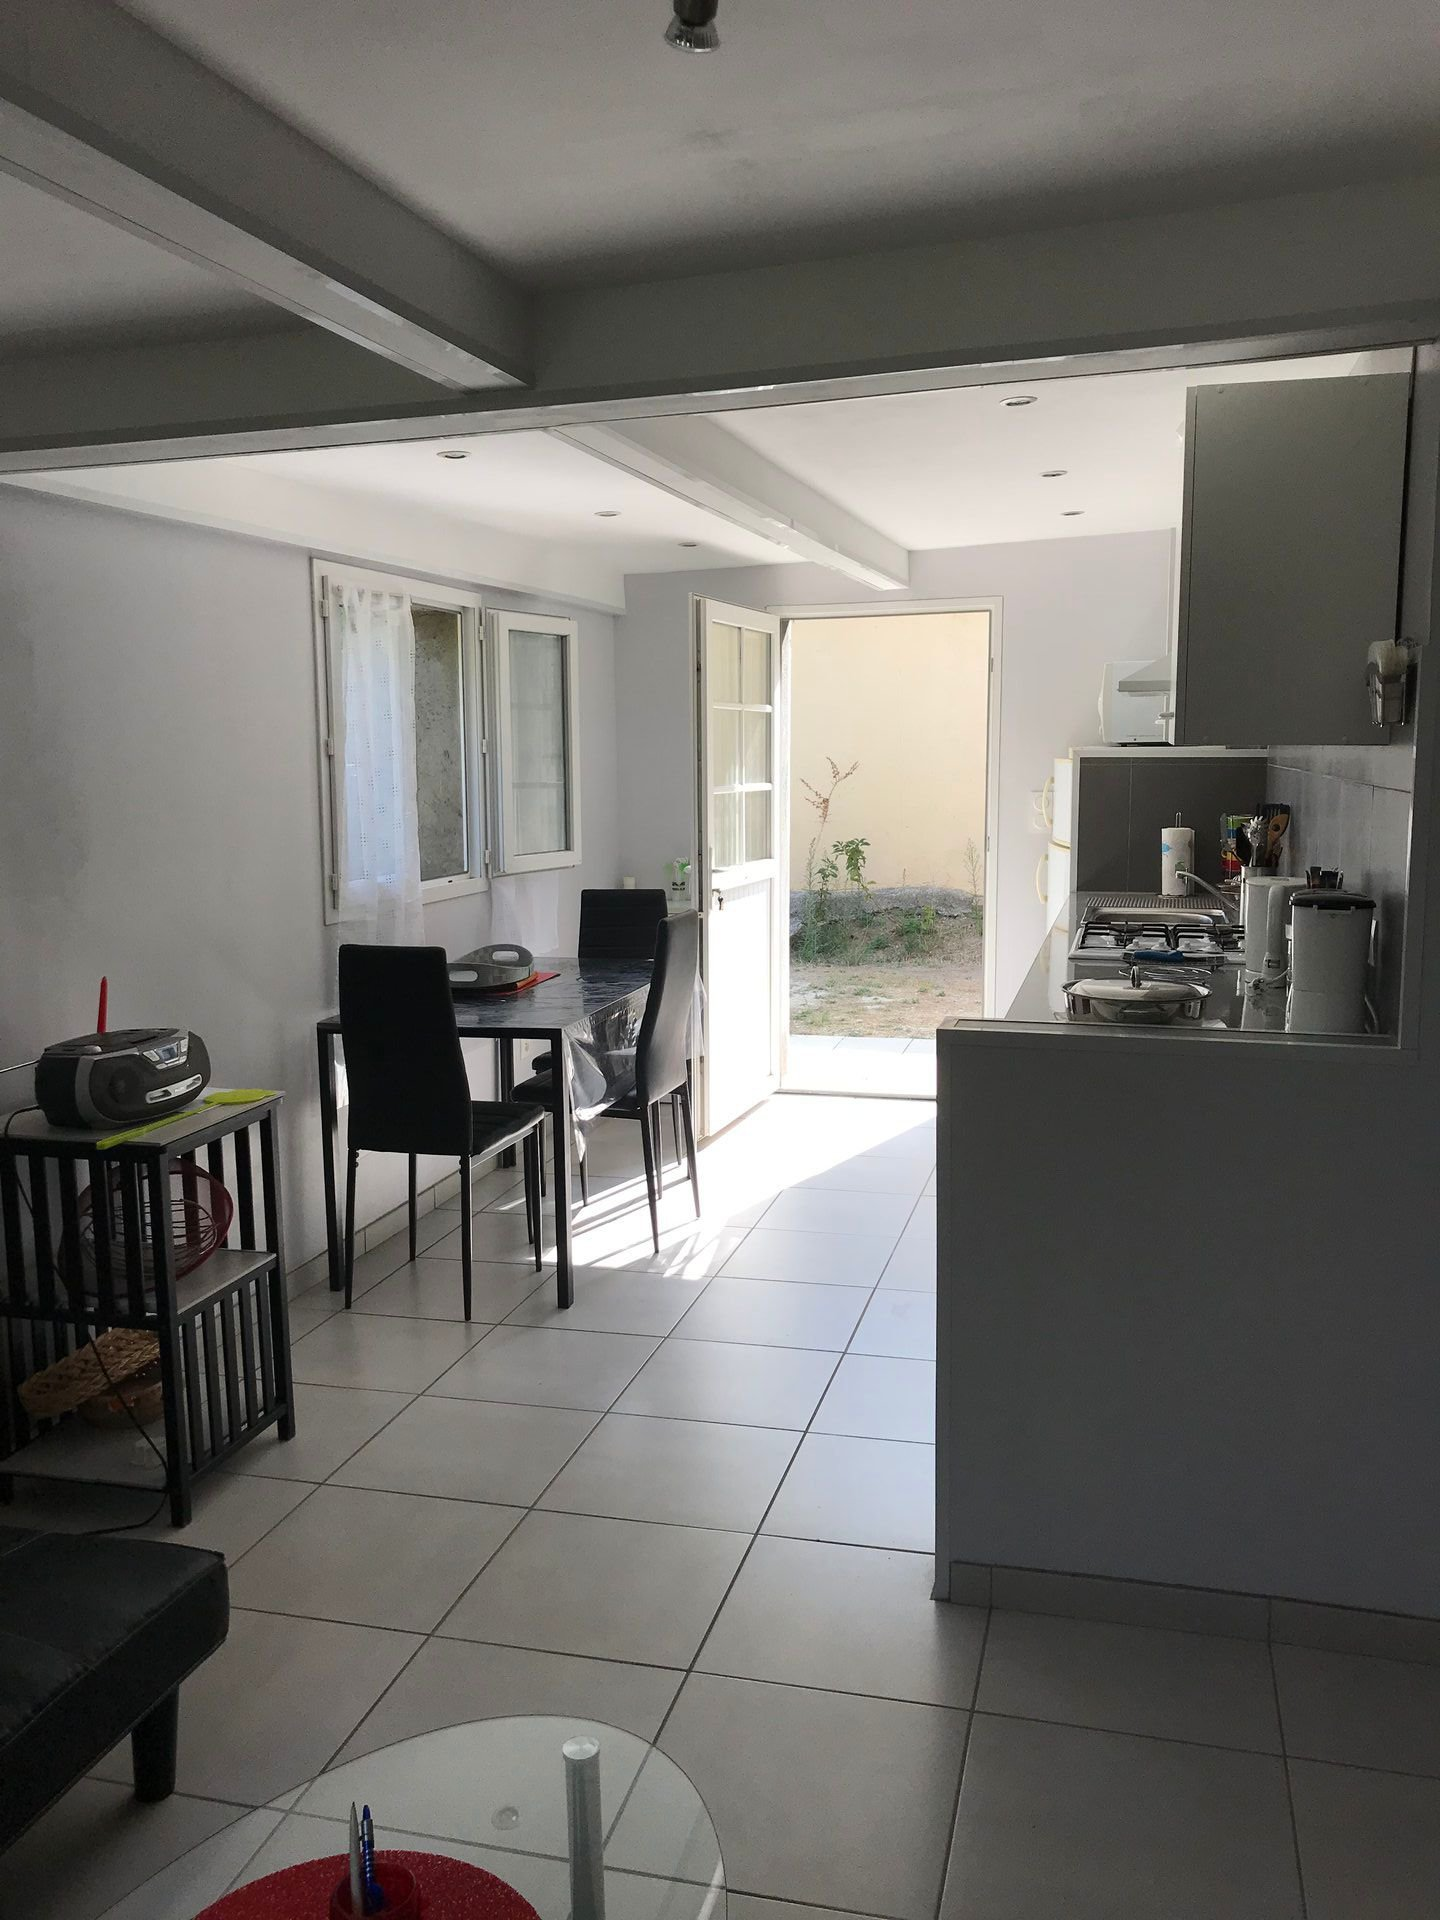 LOCATION A L'ANNEE / APPARTEMENT T2 CENTRE CALENZANA